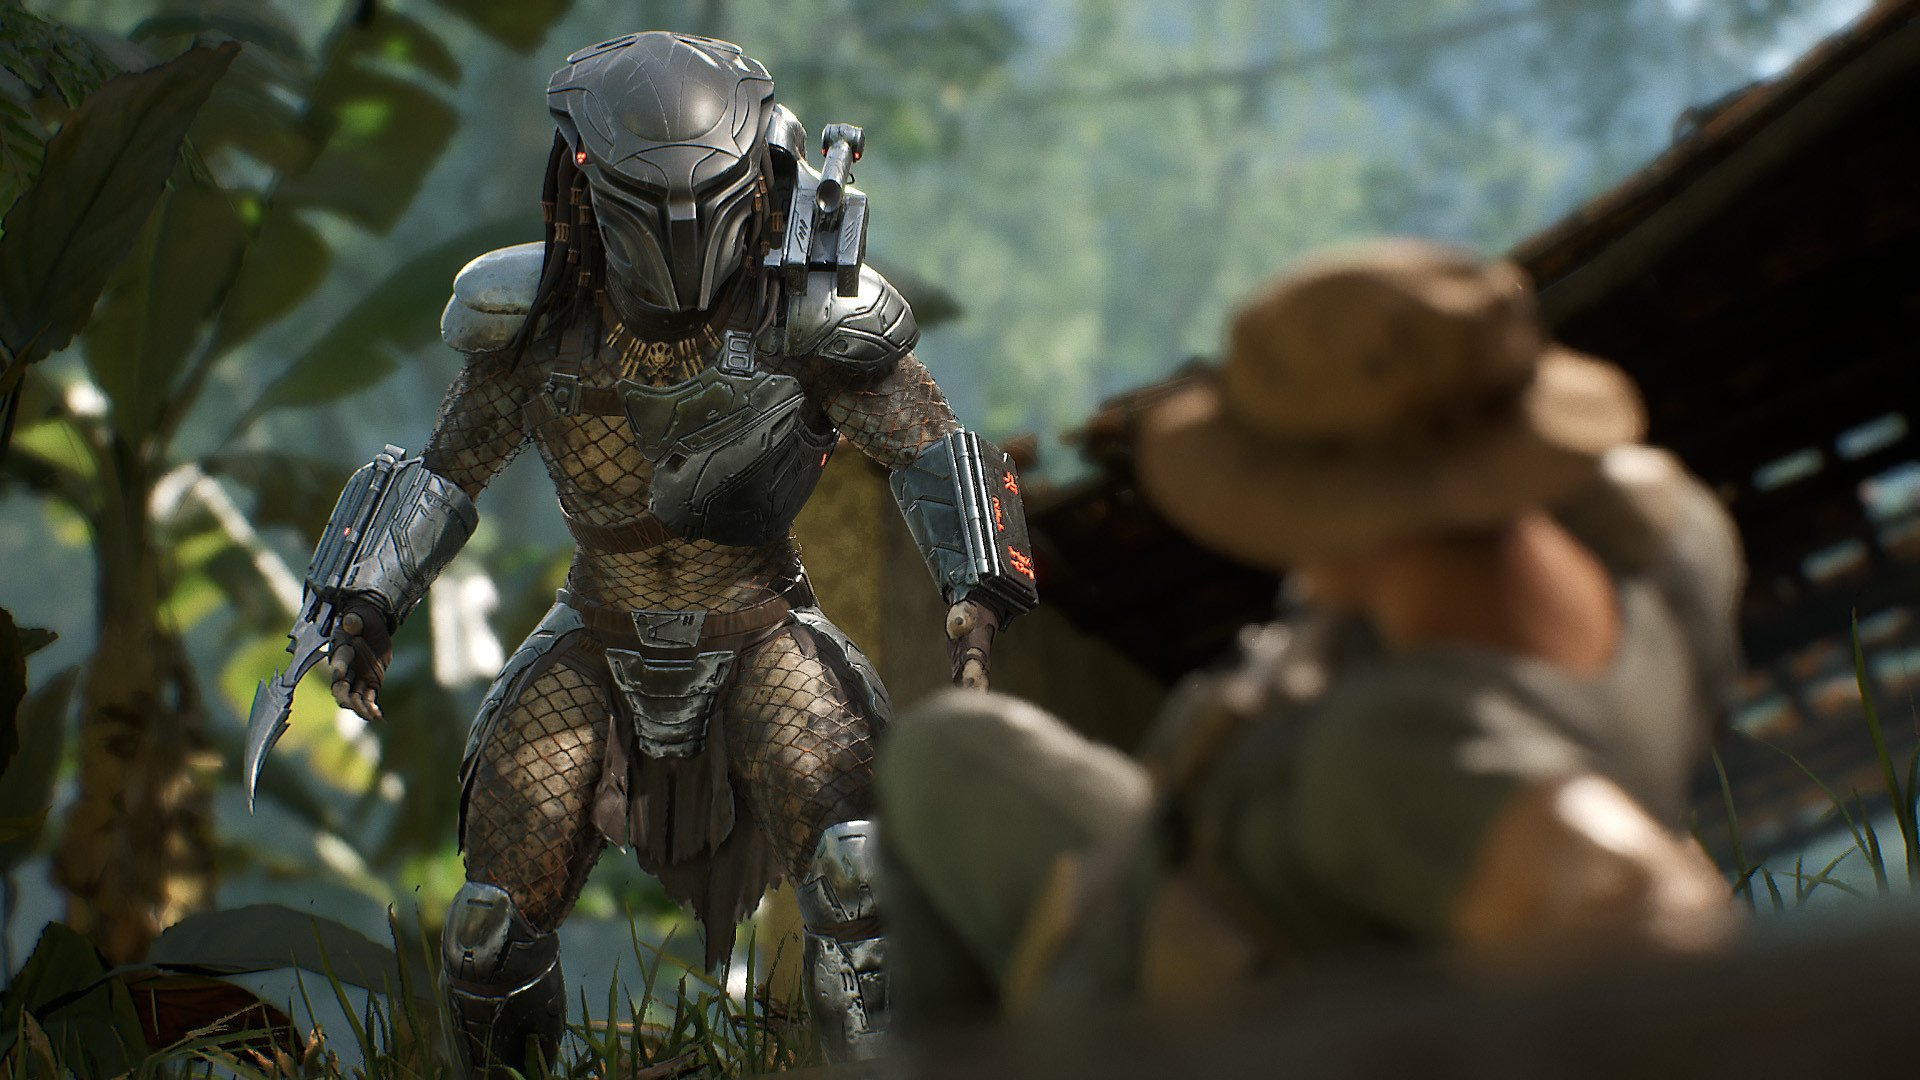 Arnold Schwarzenegger DLC Coming to Predator: Hunting Grounds